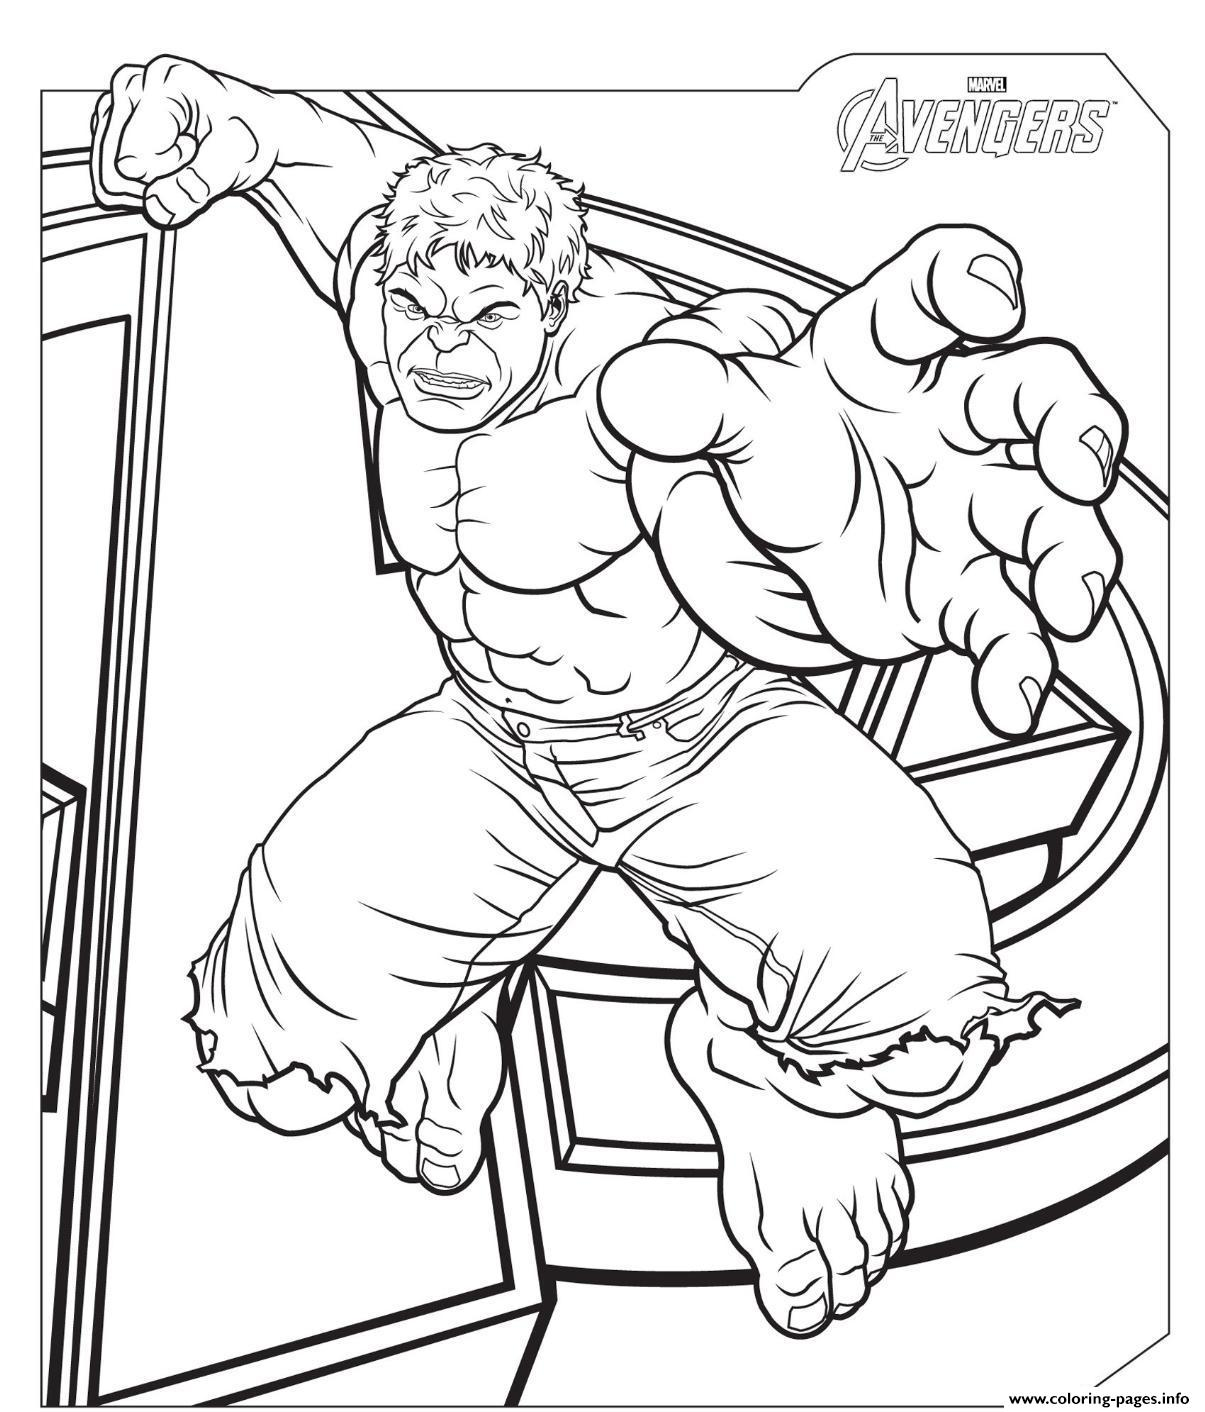 The Avengers Hulk S2f57 Coloring Pages